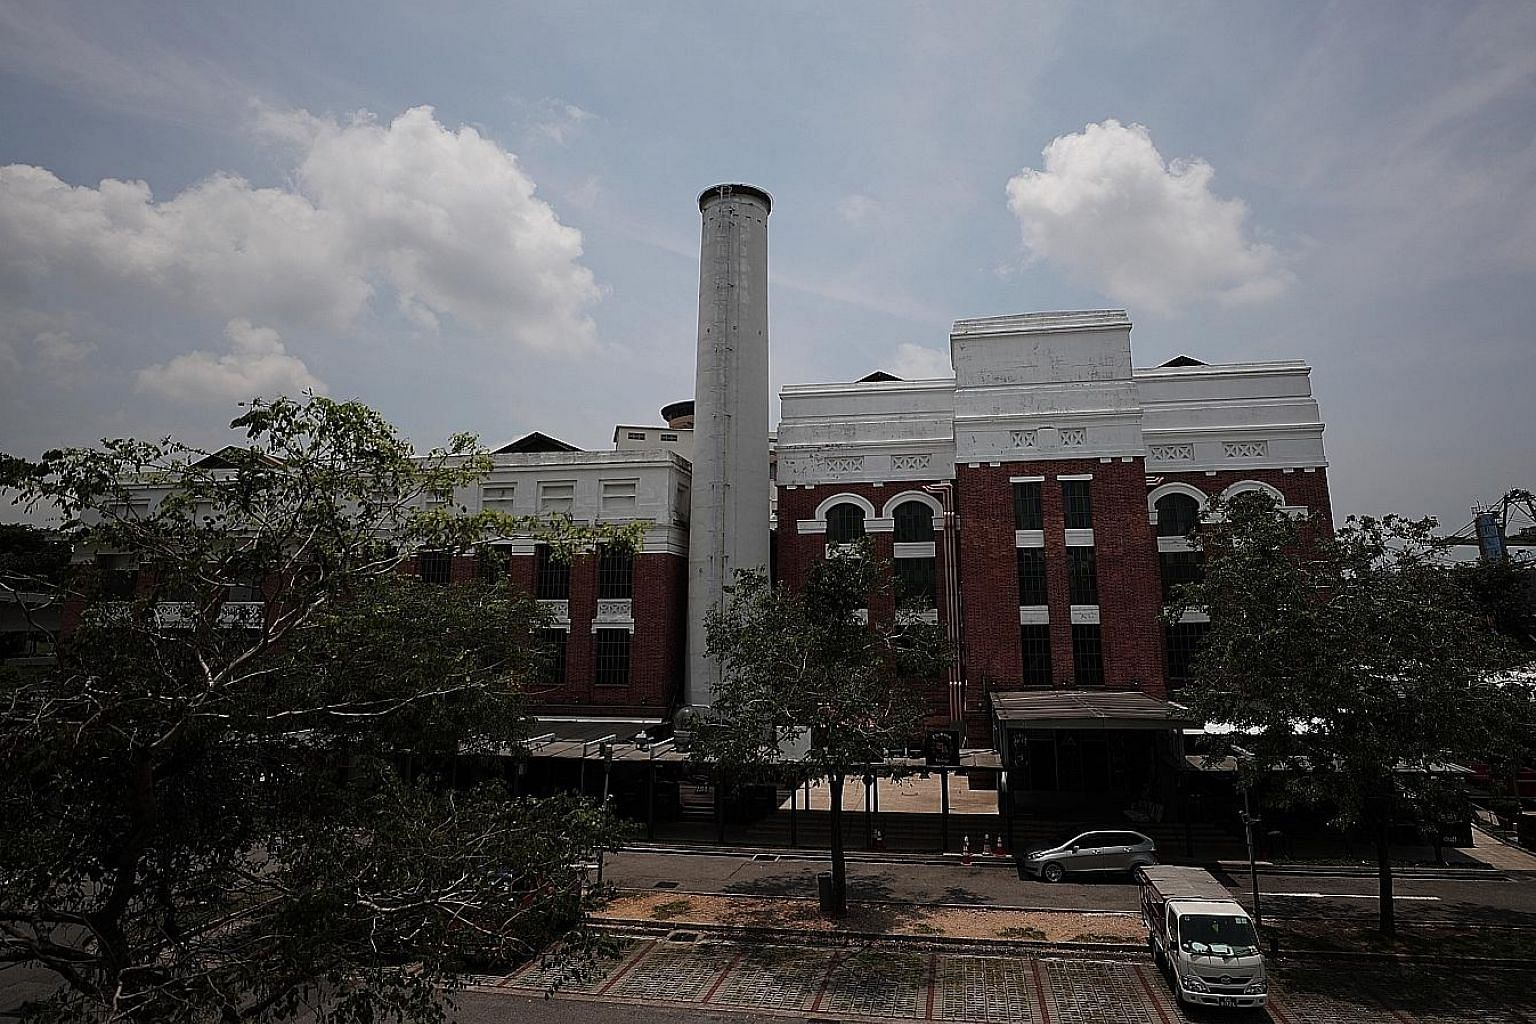 St James Power Station, a former coal-fired power plant built in the 1920s and gazetted as a national monument, was transformed by nightlife veteran Dennis Foo into an entertainment hub in 2006 under a joint venture with retailer F J Benjamin.